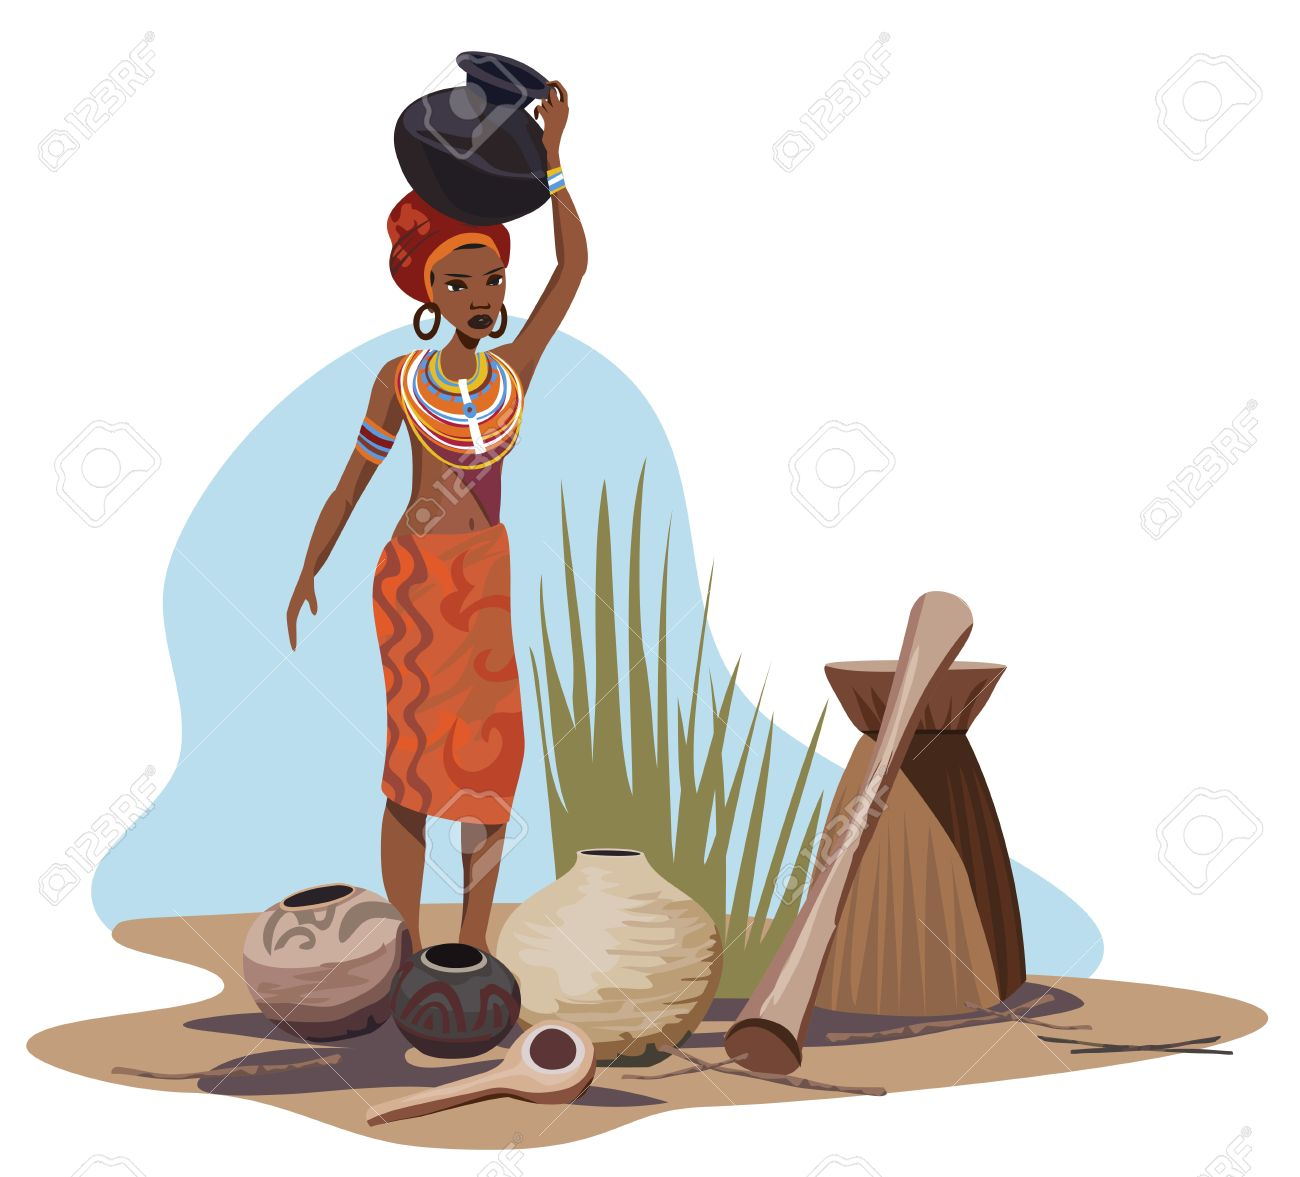 African lady clipart 6 » Clipart Station.